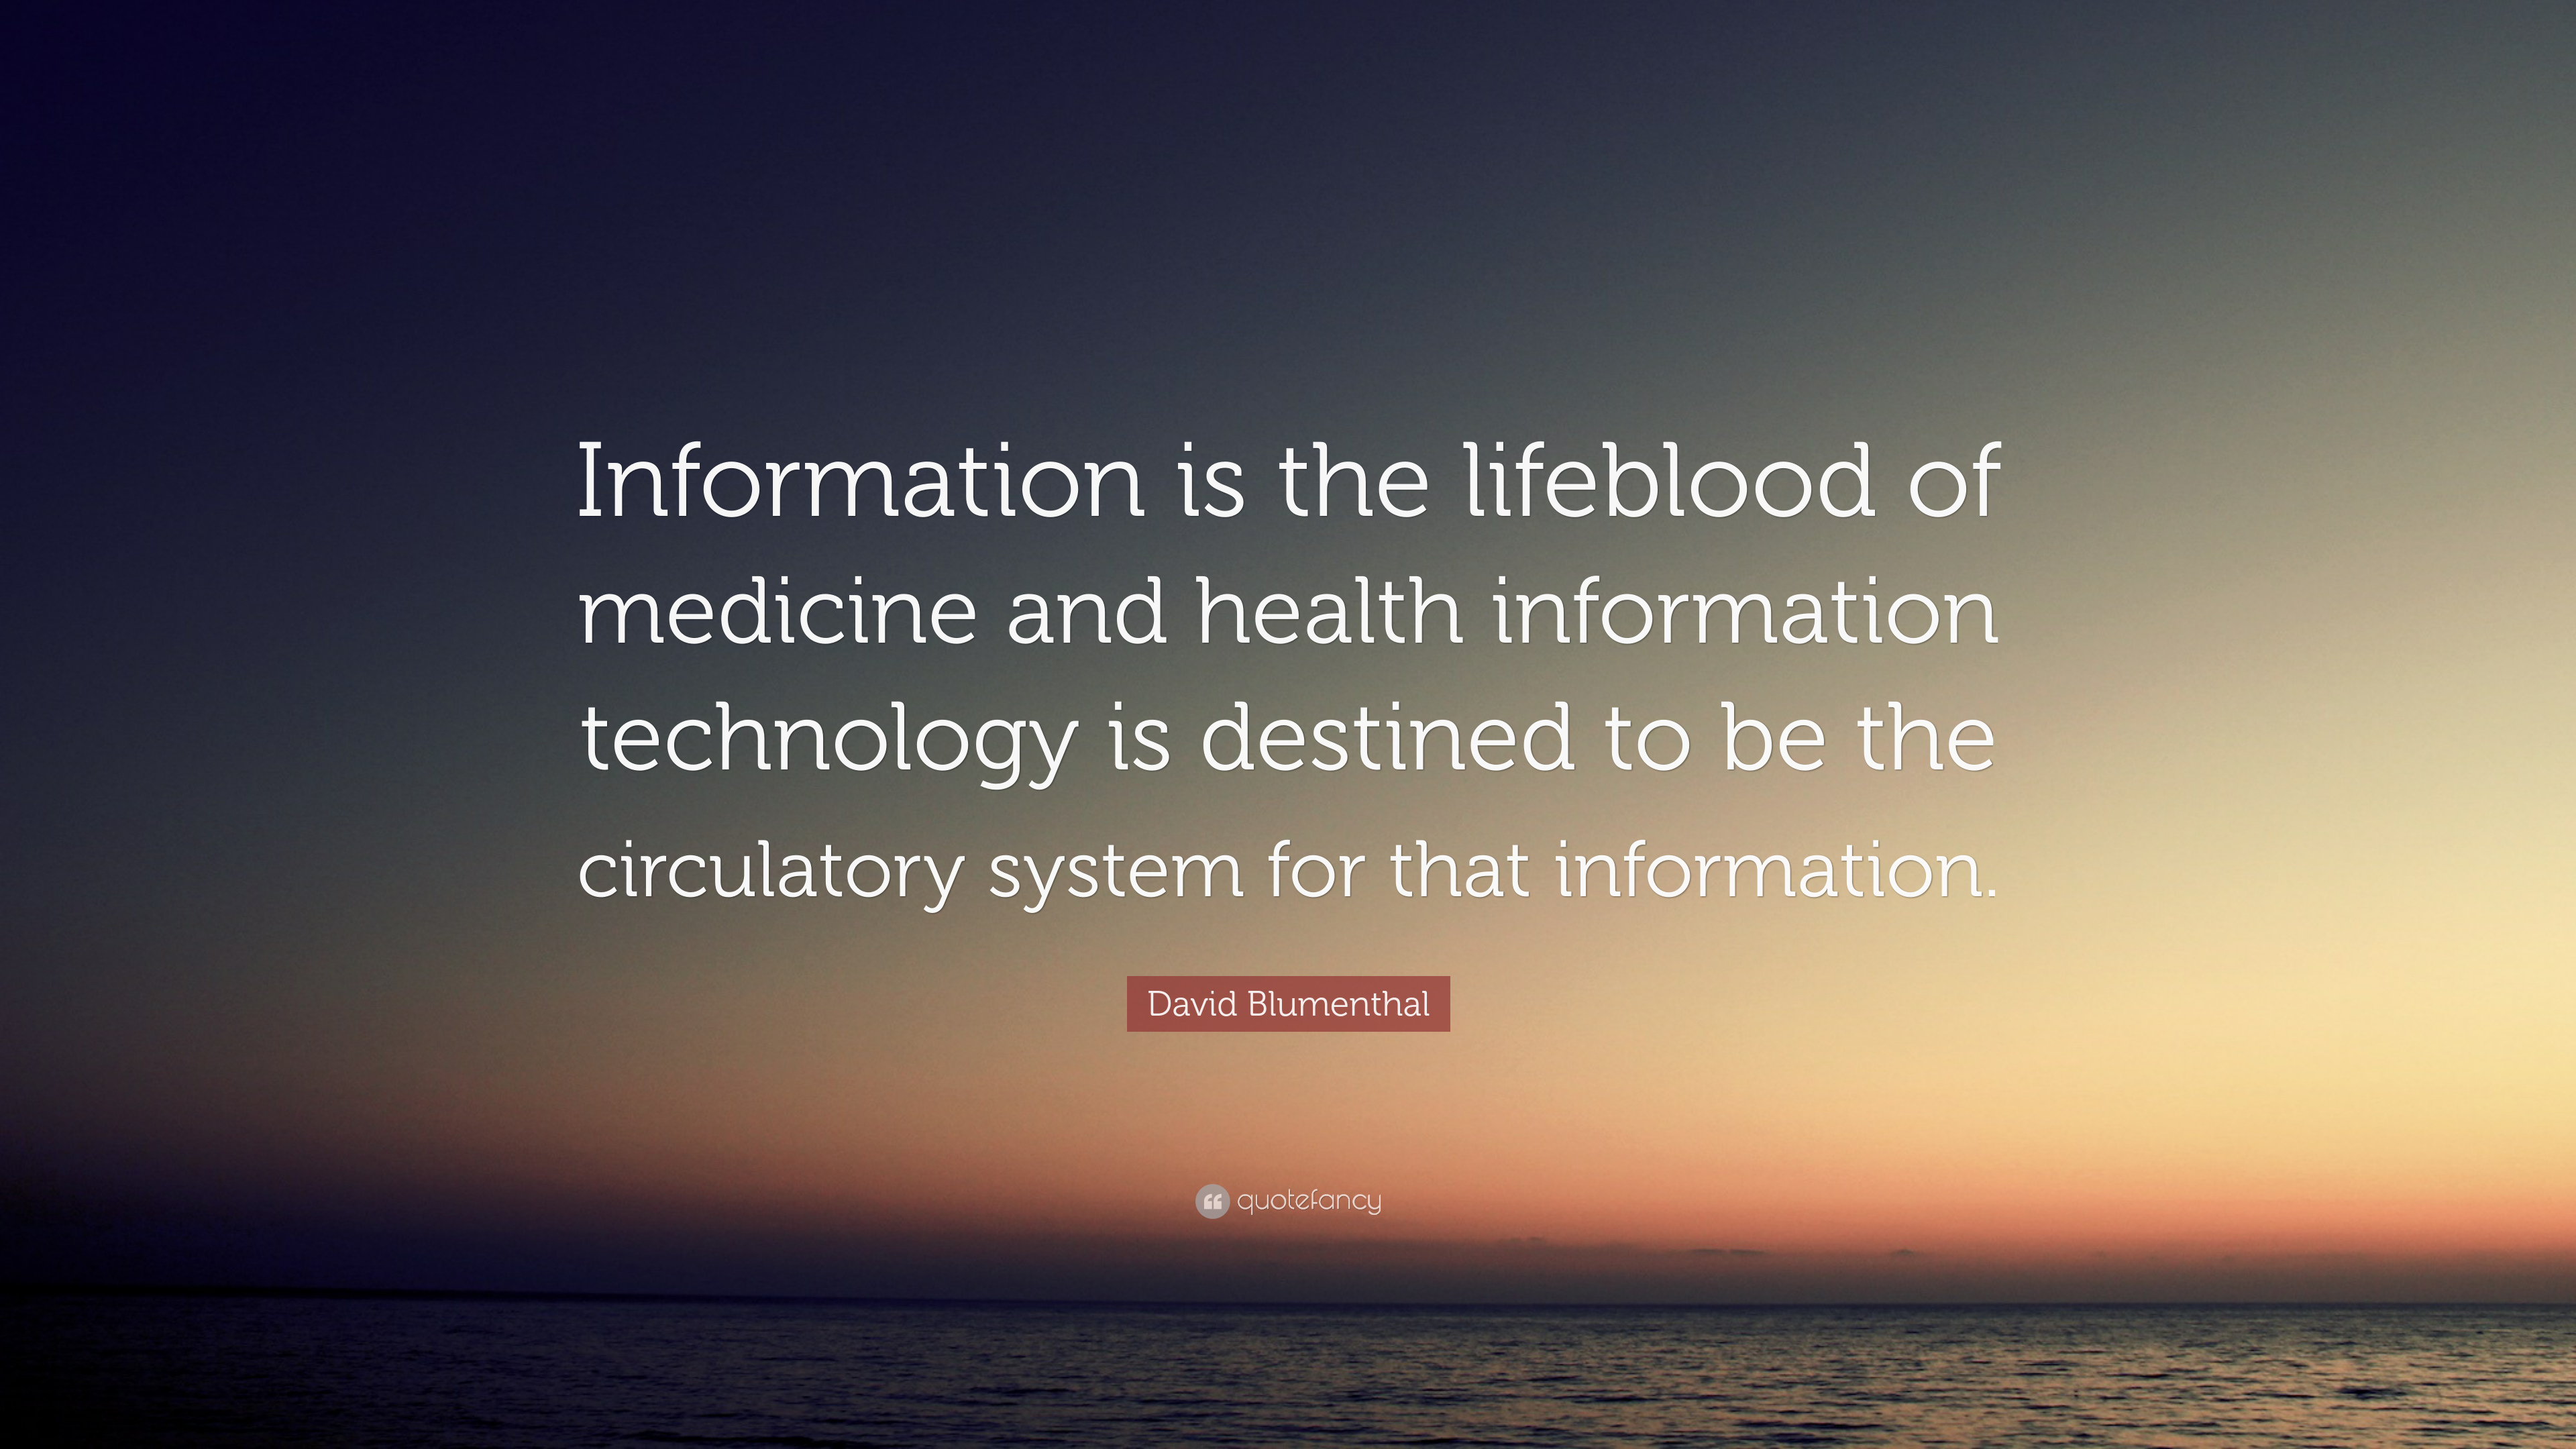 the lifeblood organization of information systems information technology essay The term ''information technology systems in an organization '' is composed of four distinct parts which include: an organization, information in an organization, and information technology and information technology systems in an organization.